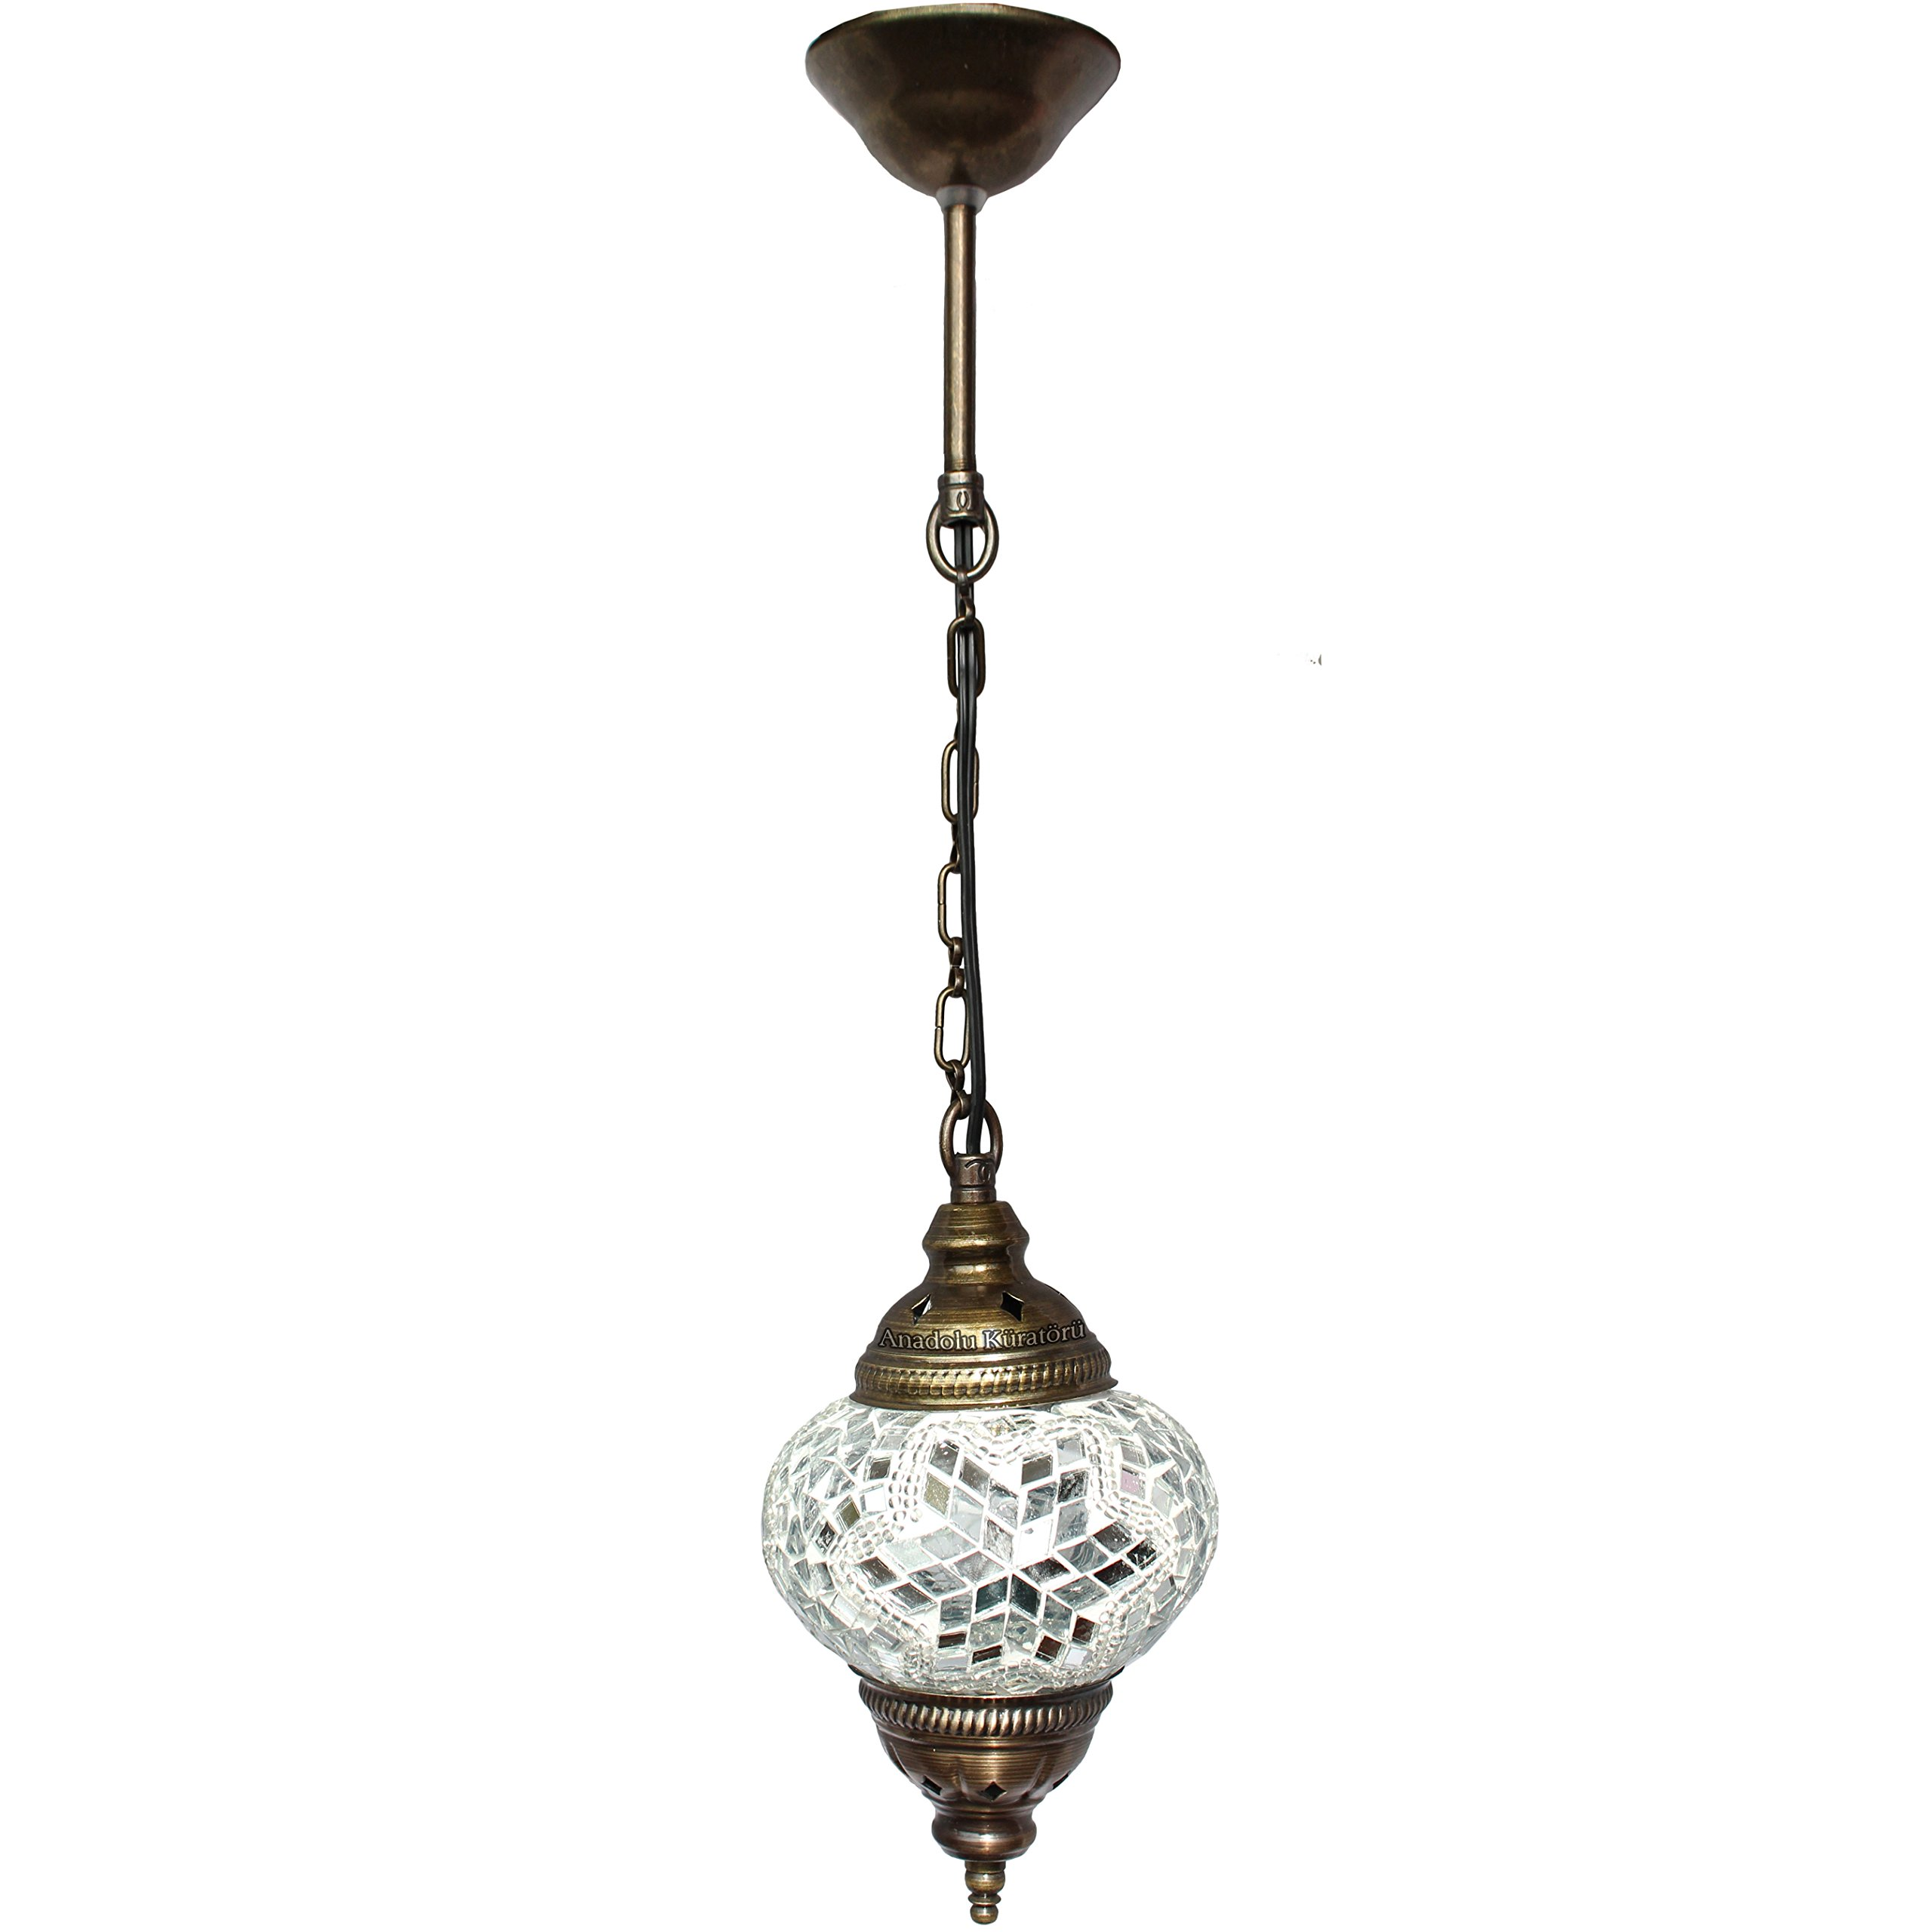 Ceiling Pendant Fixtures, Mosaic Lamps, Turkish Lamps, Hanging Lights, Moroccan Lanterns, Color Glass, Size 2, White, Arabian Nights